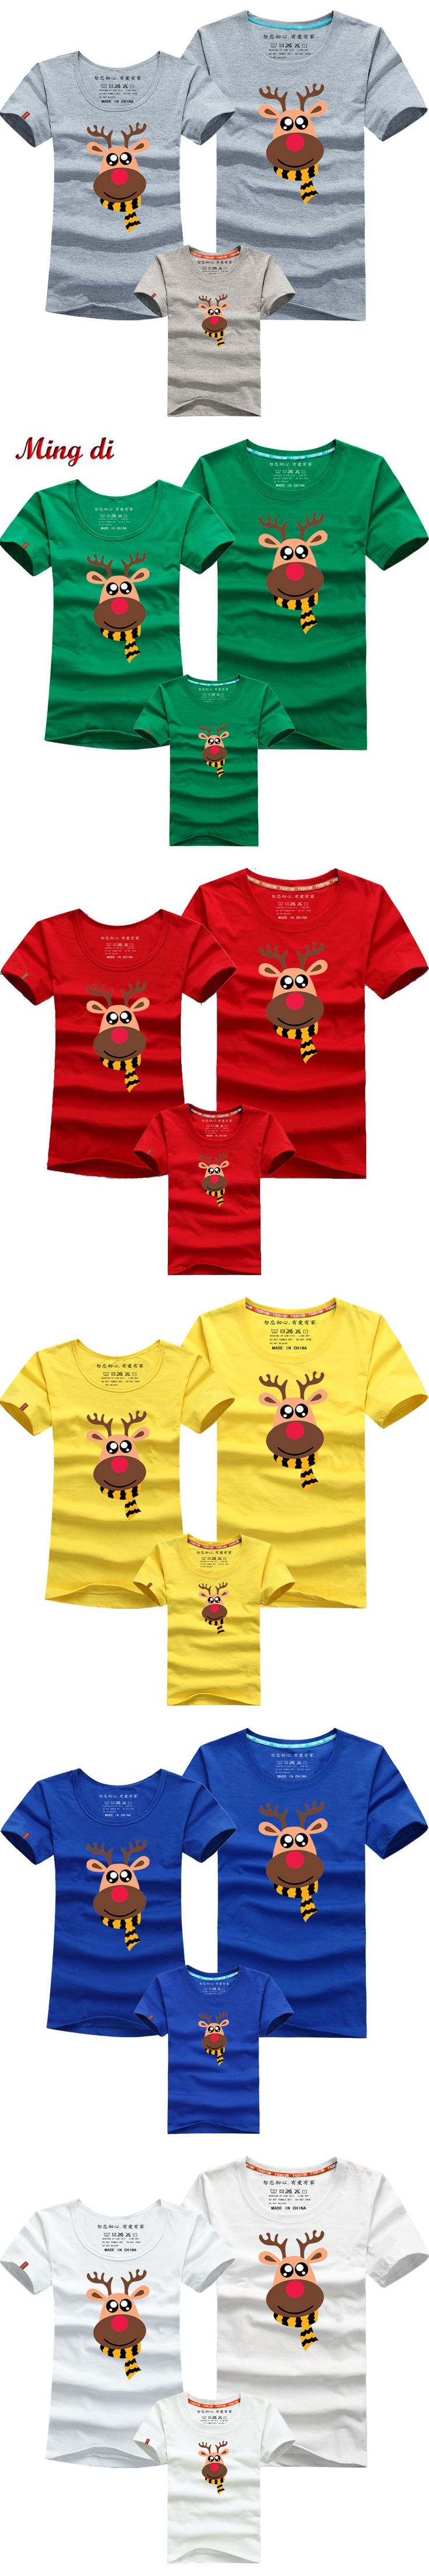 2017 Fashion Family Look Family Matching Outfits T-shirt Color Milu Deer Matching Family Clothes Mother Father Baby Short Sleeve